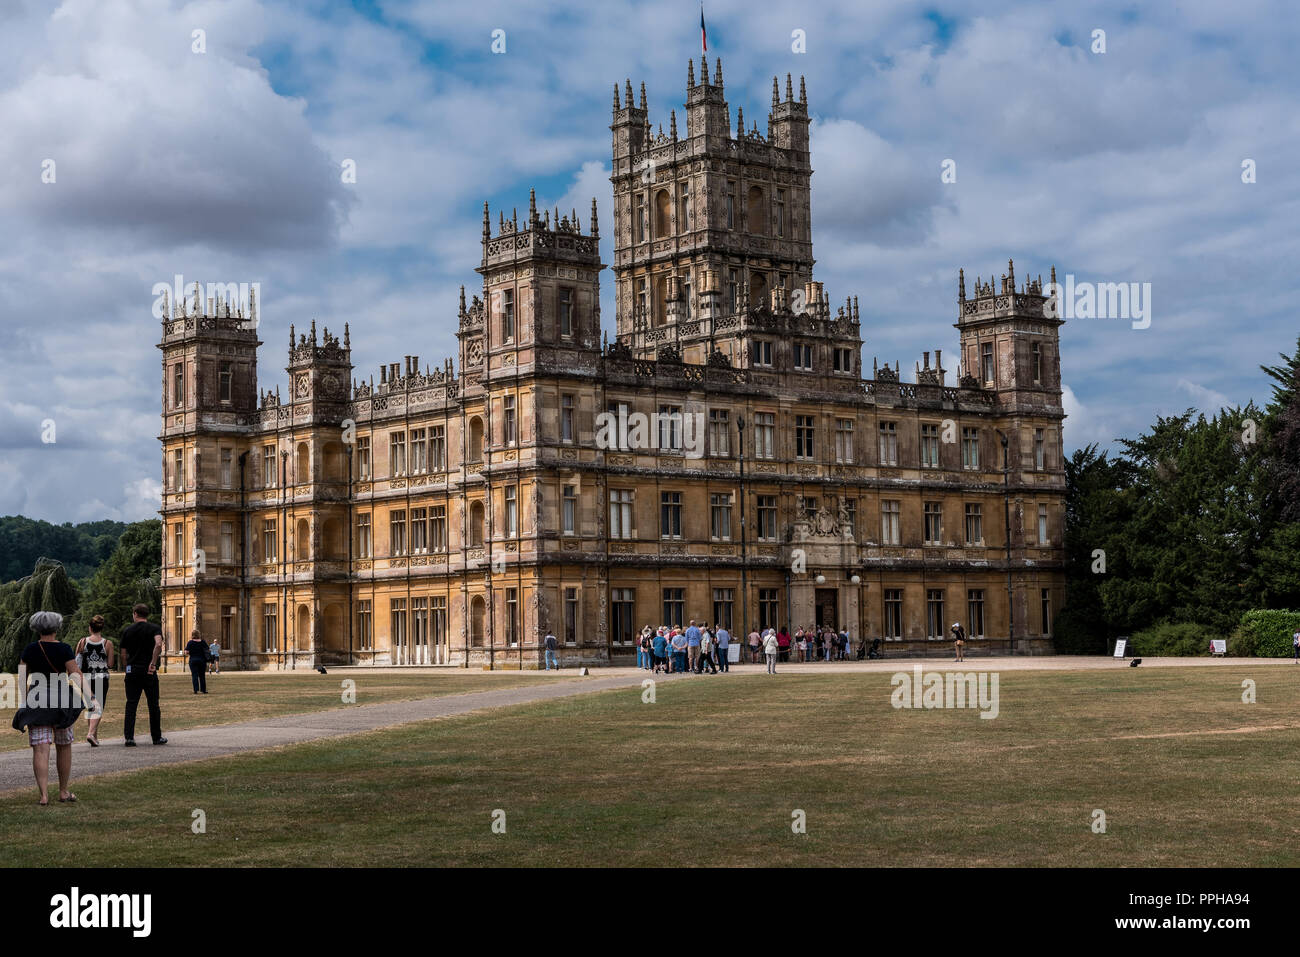 Newbury, England -- July 18, 2018. Tourists are lining up outside Highclere Castle, where Downton Abbey is filmed, for a tour. - Stock Image